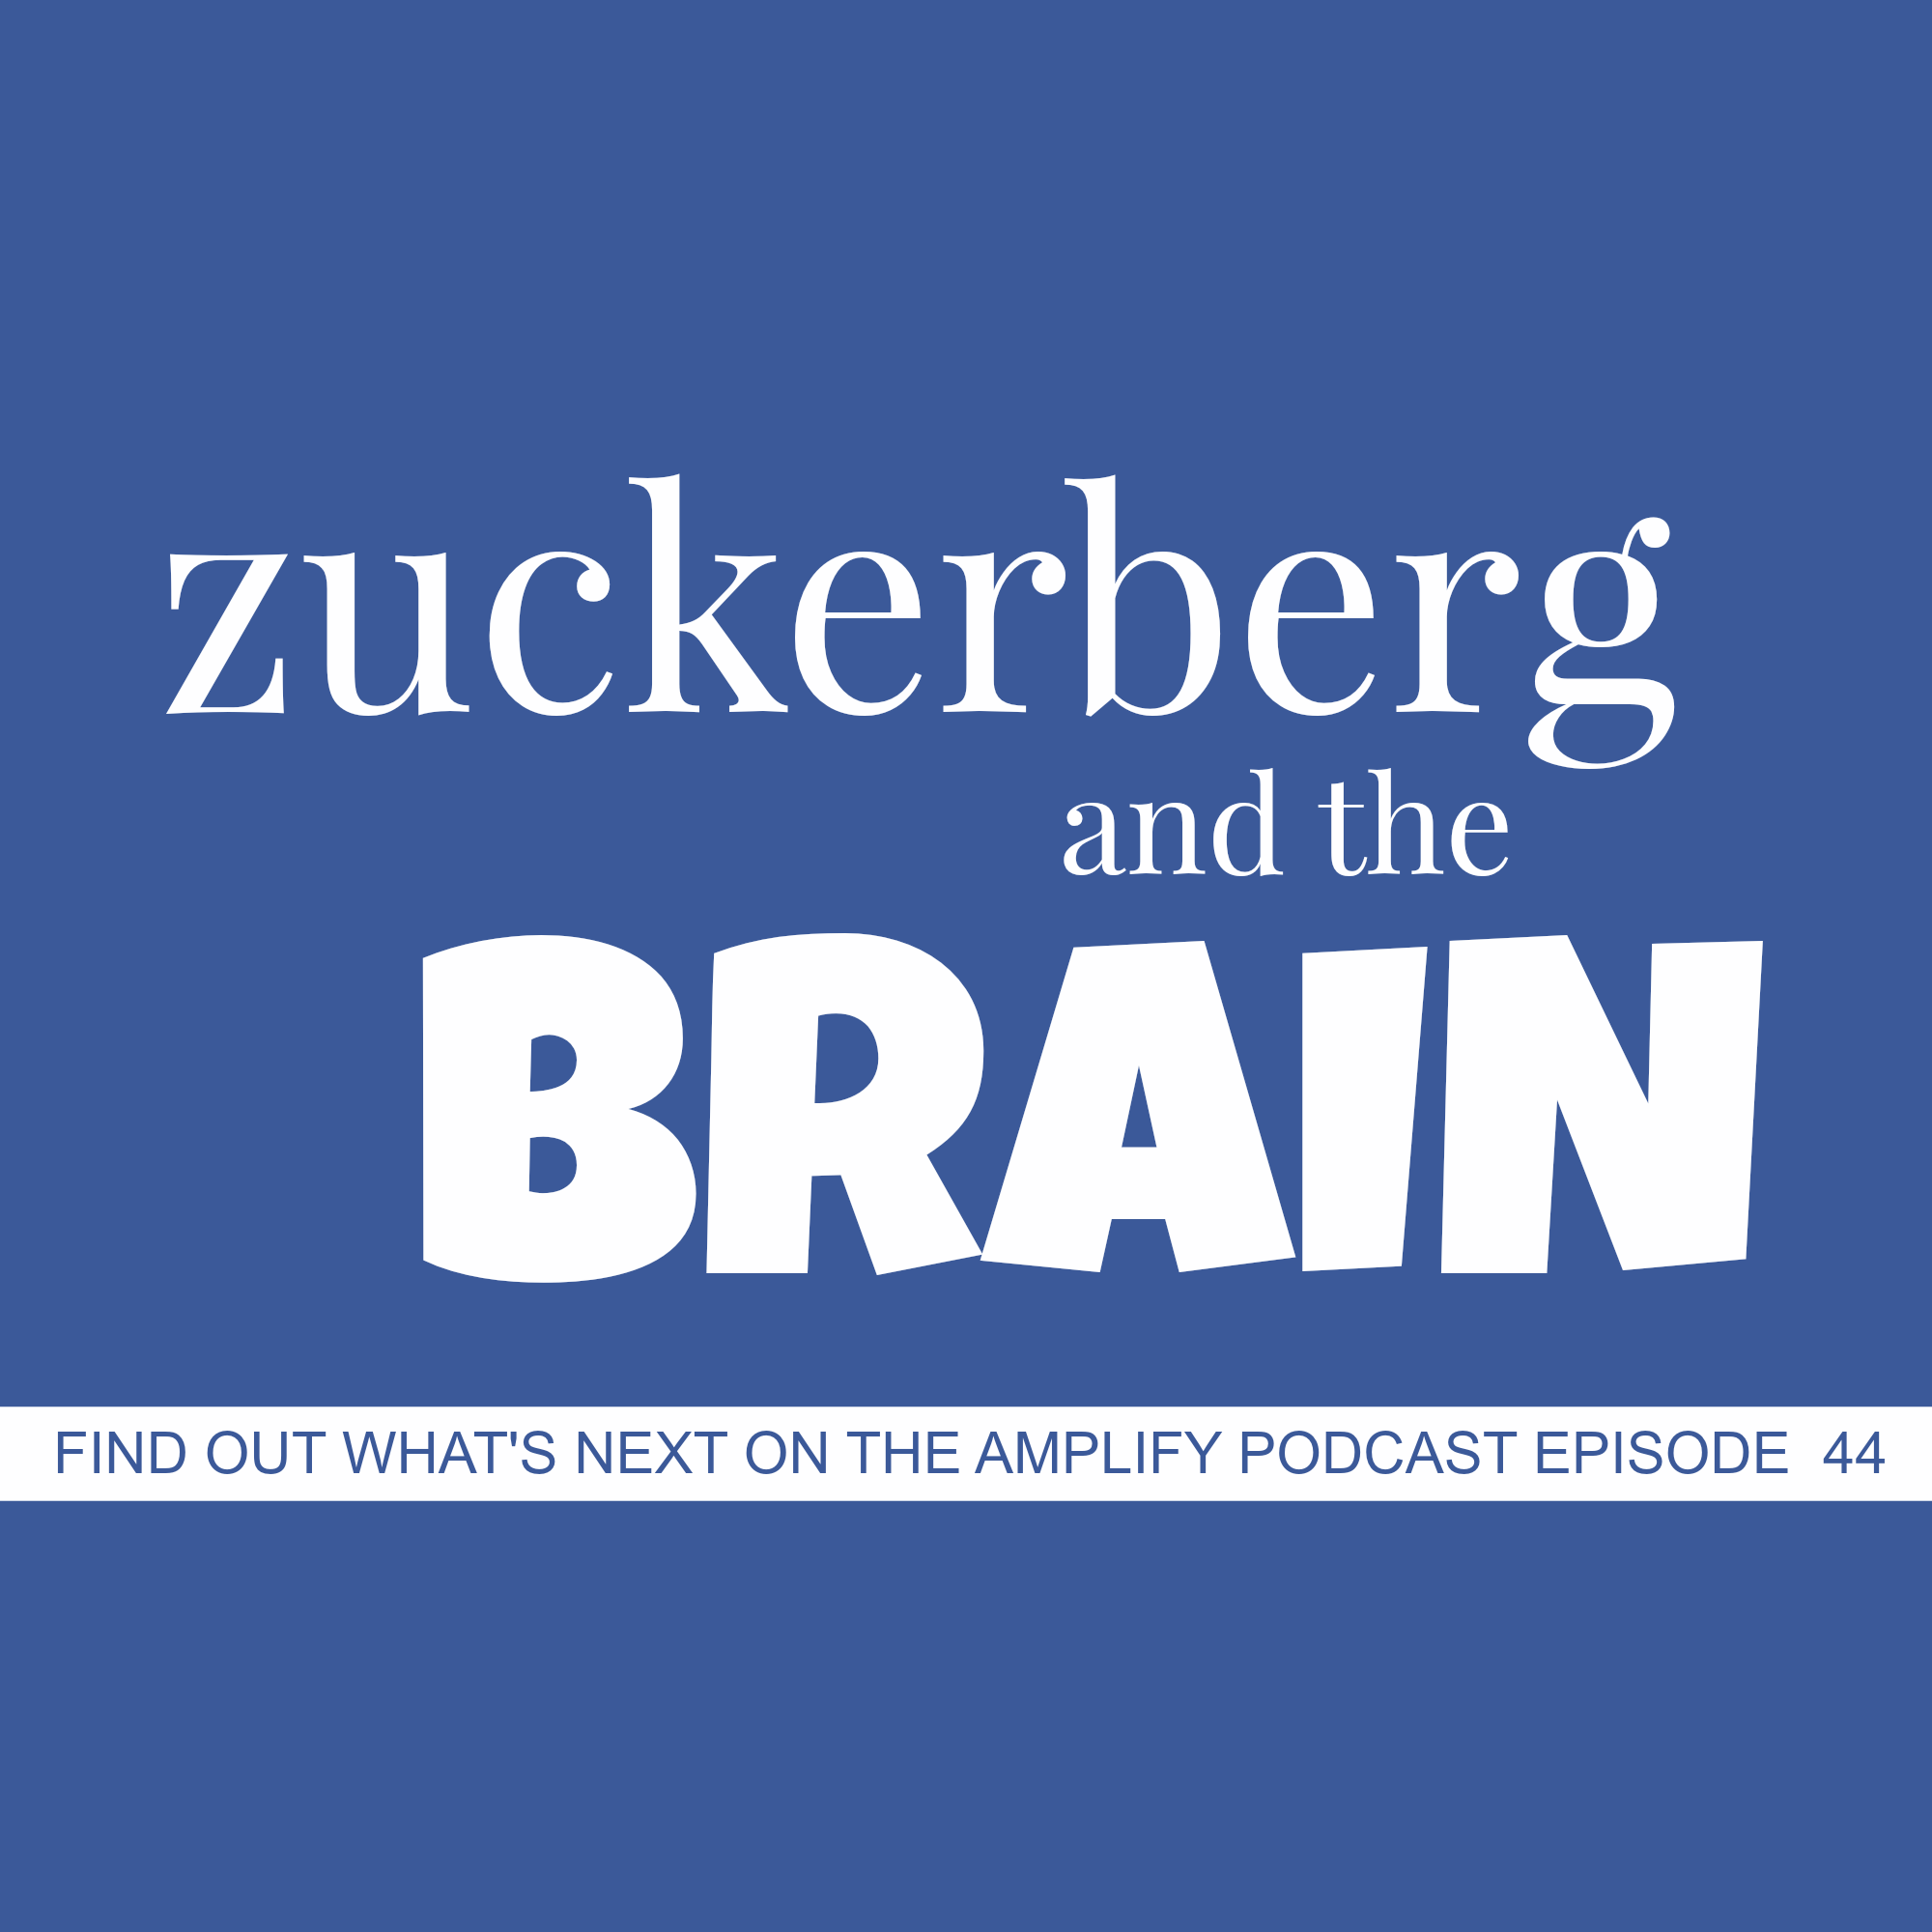 Zuckerberg and the Brain